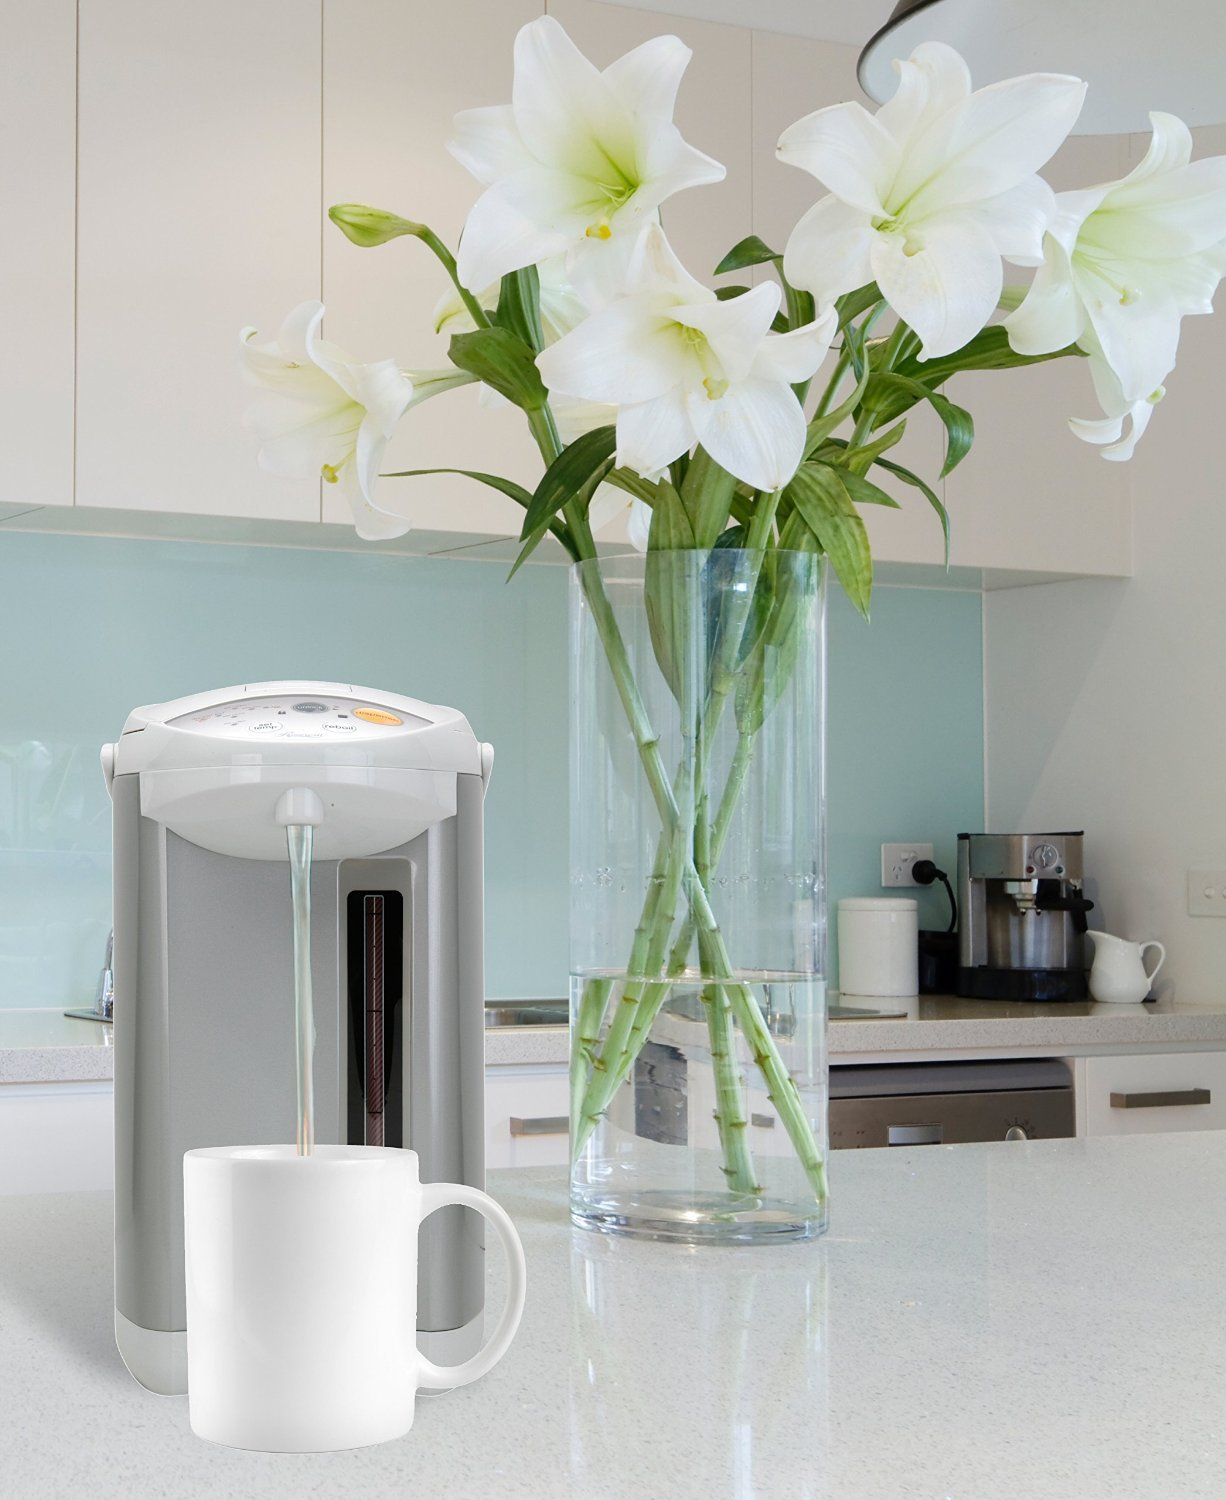 Amazon.com: Rosewill R-HAP-01 Electric 4 L Hot Water Dispenser with ...